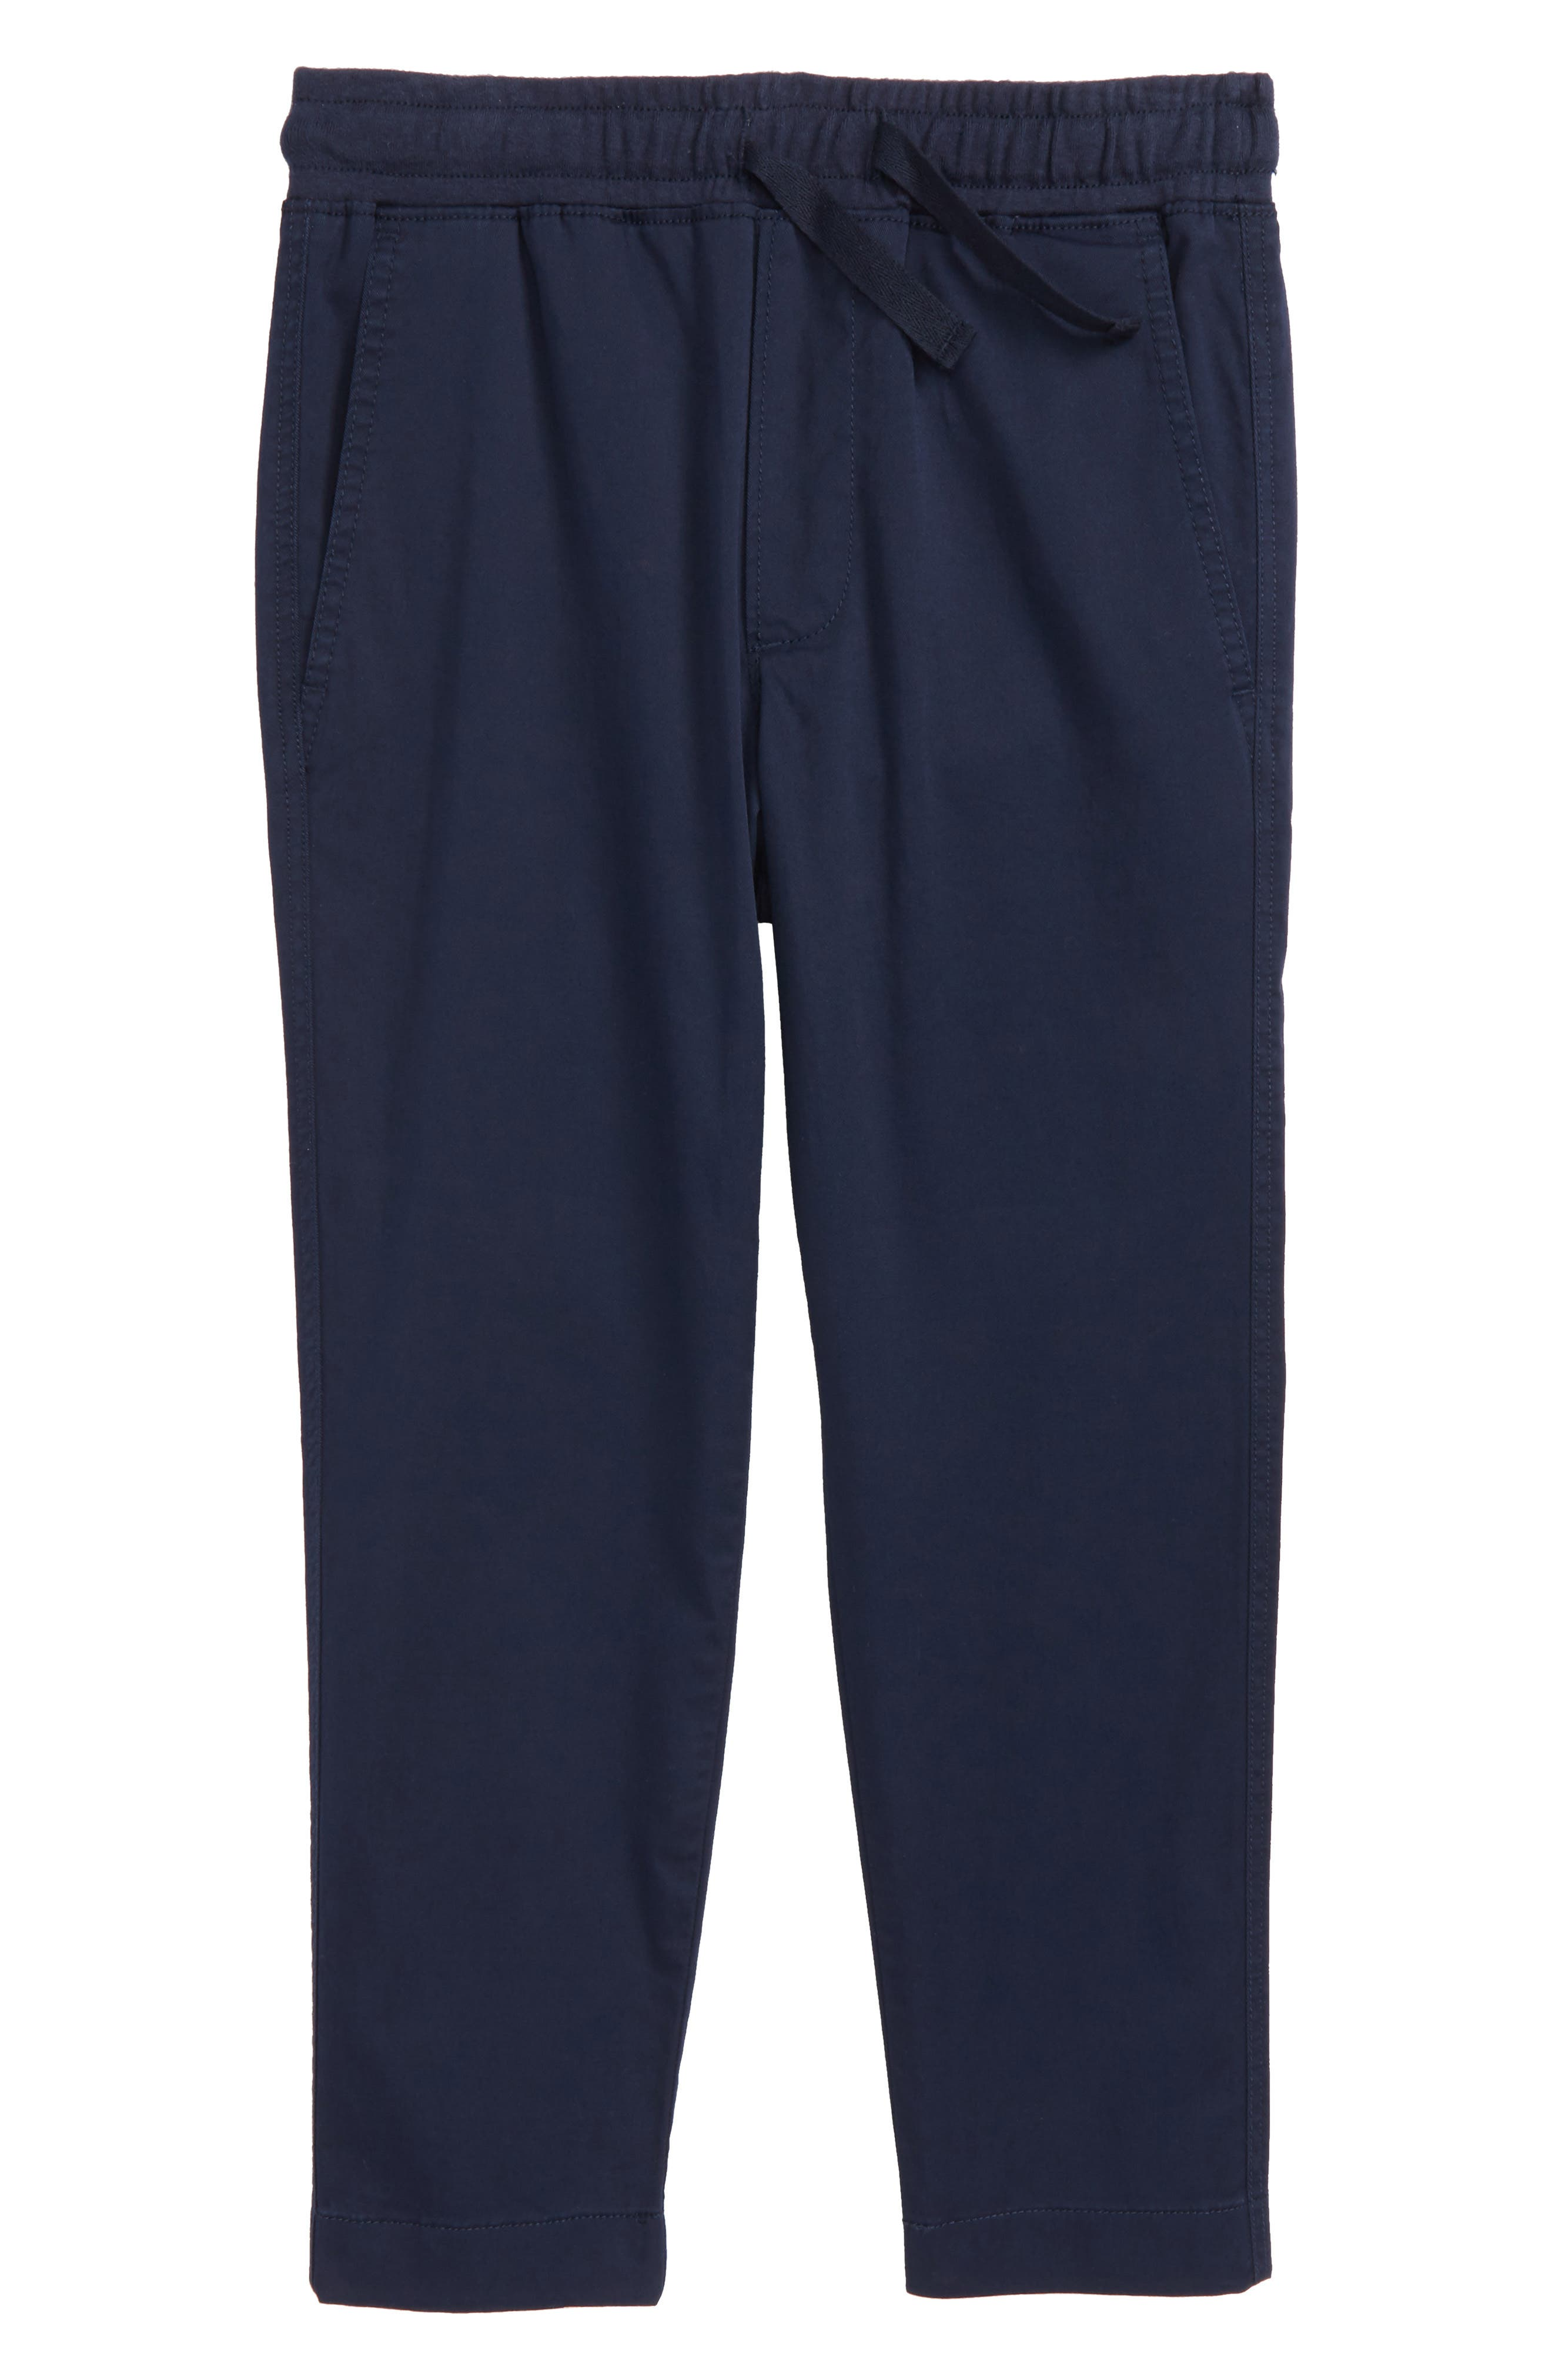 Toddler Boys Crewcuts By Jcrew Pull On Pants Size 3T  Blue